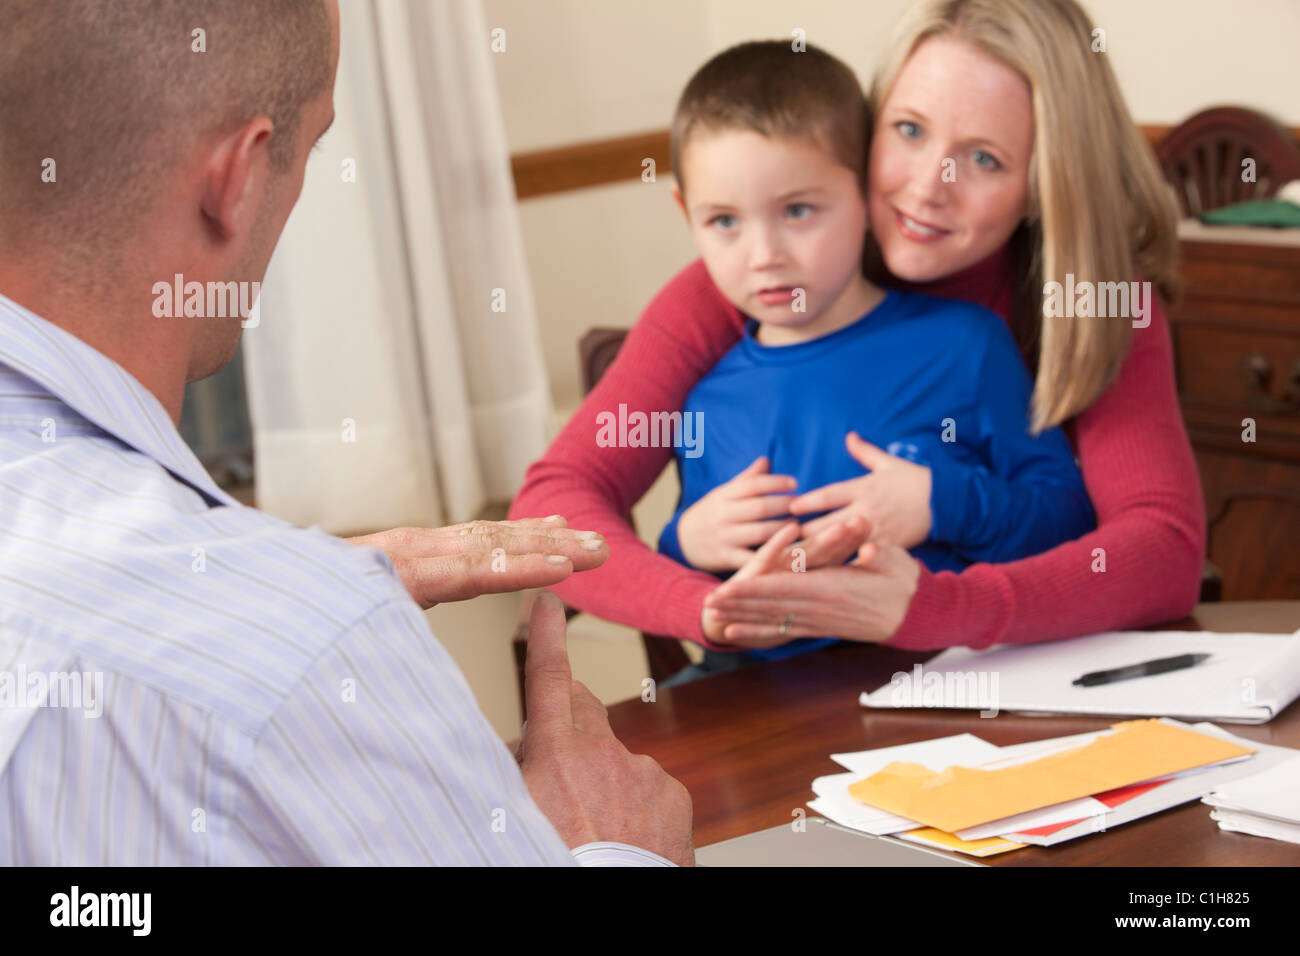 Woman signing the word 'Kindergarten/Nice' in American Sign Language while communicating with a man - Stock Image